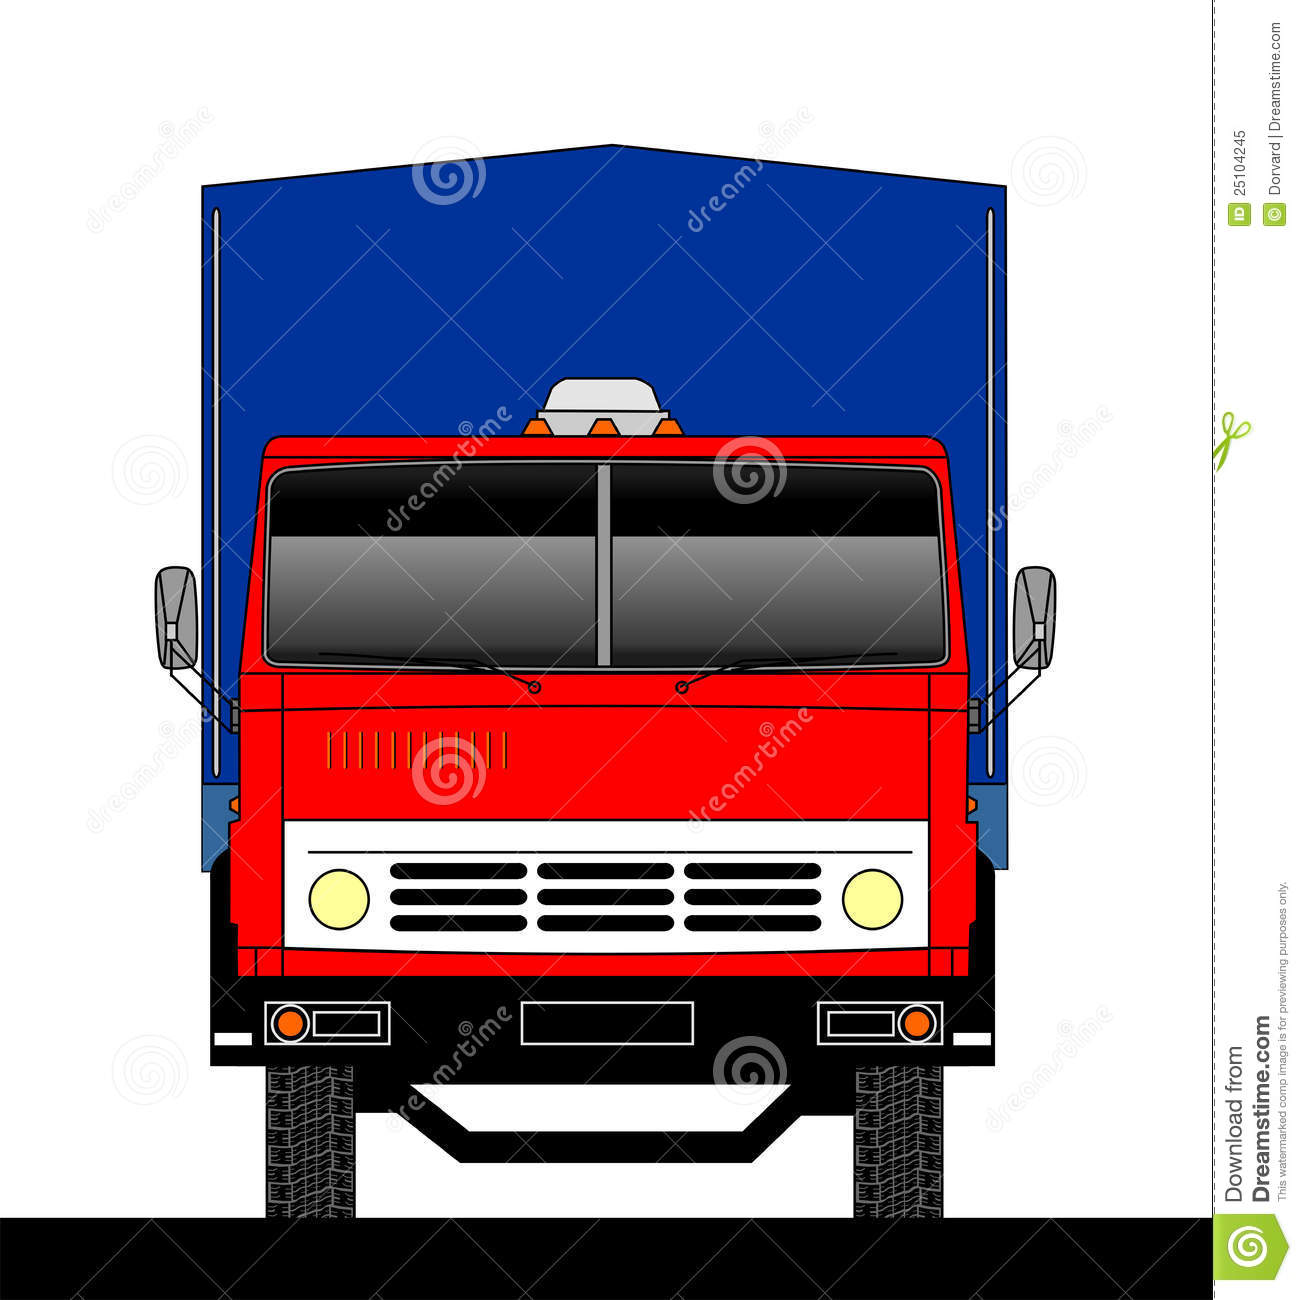 Truck Front View Royalty Free Stock Photo - Image: 25104245